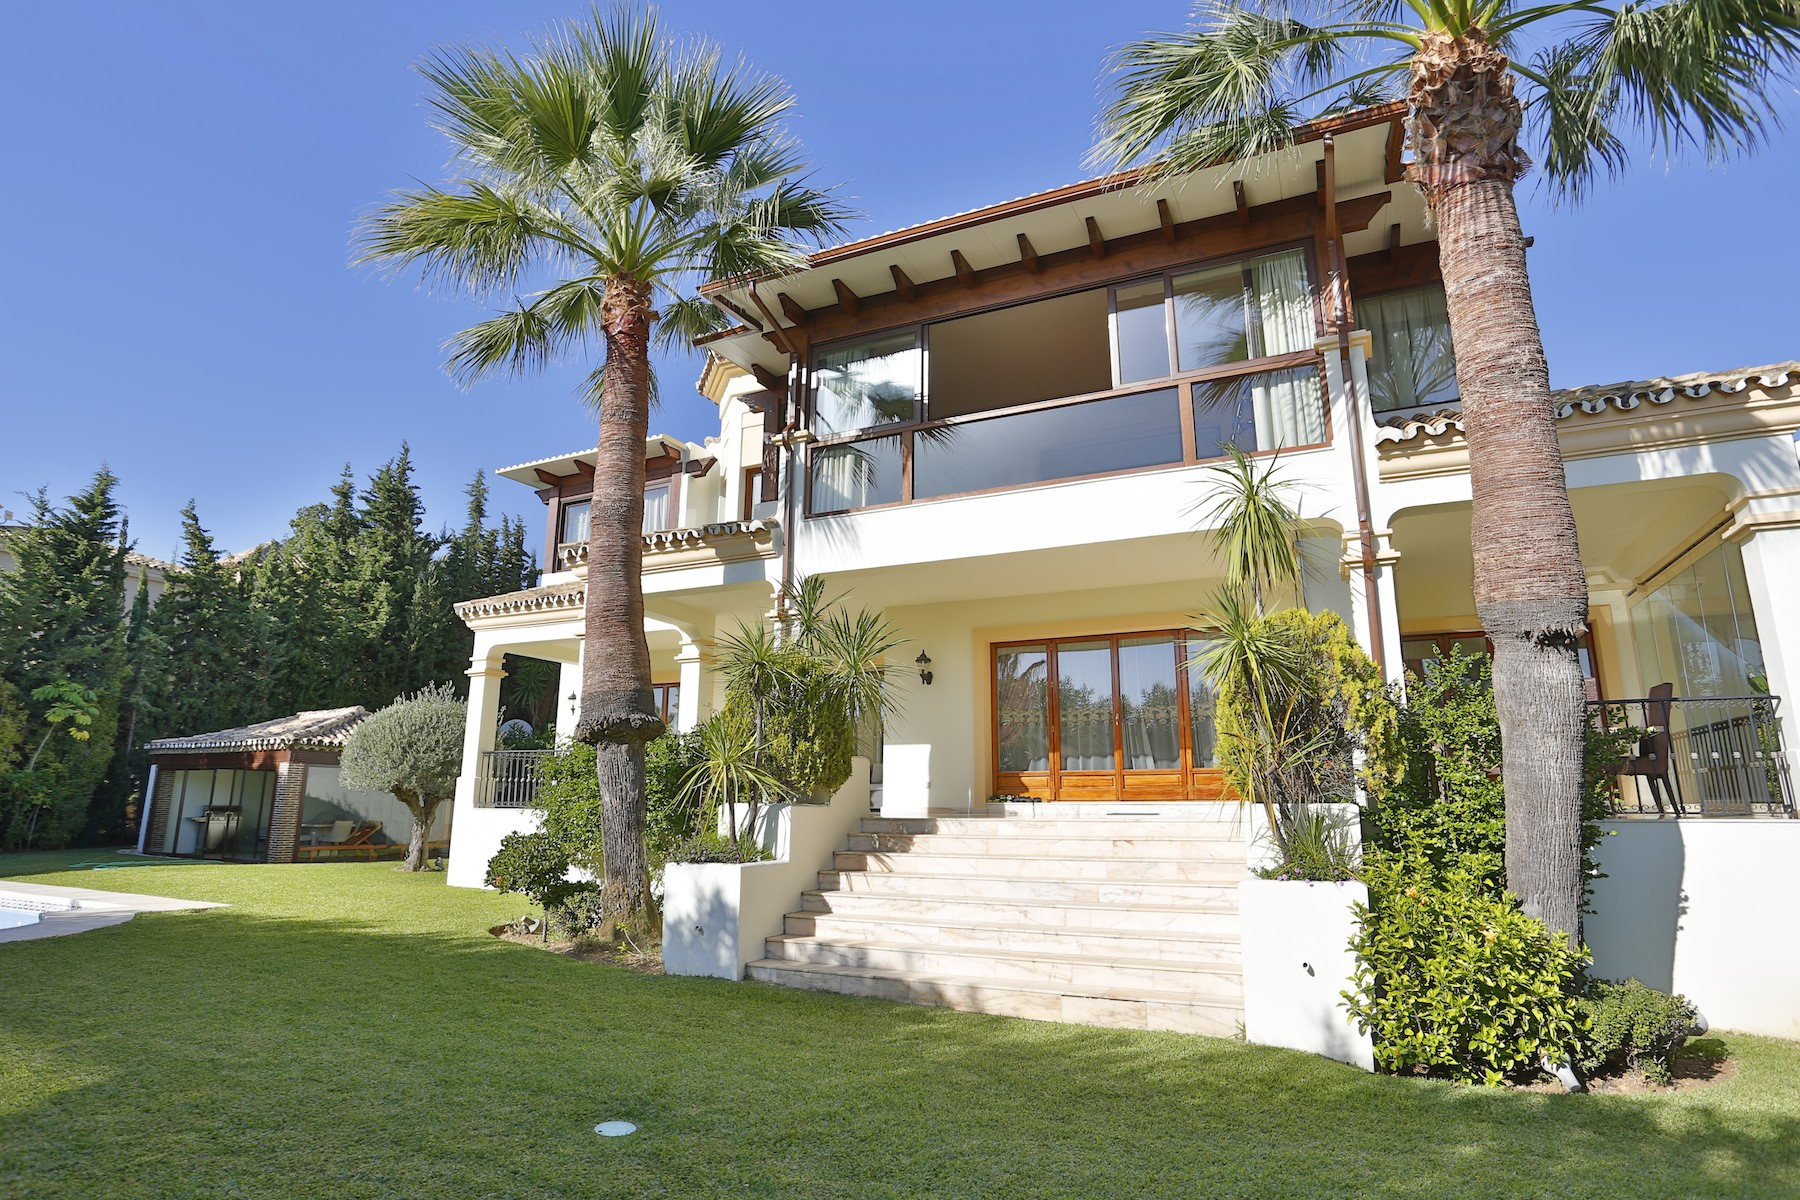 Casa Unifamiliar por un Venta en Elegant villa situated in the best sought after residential area in Marbella Sierra Blanca Marbella, Costa Del Sol, 29600 España